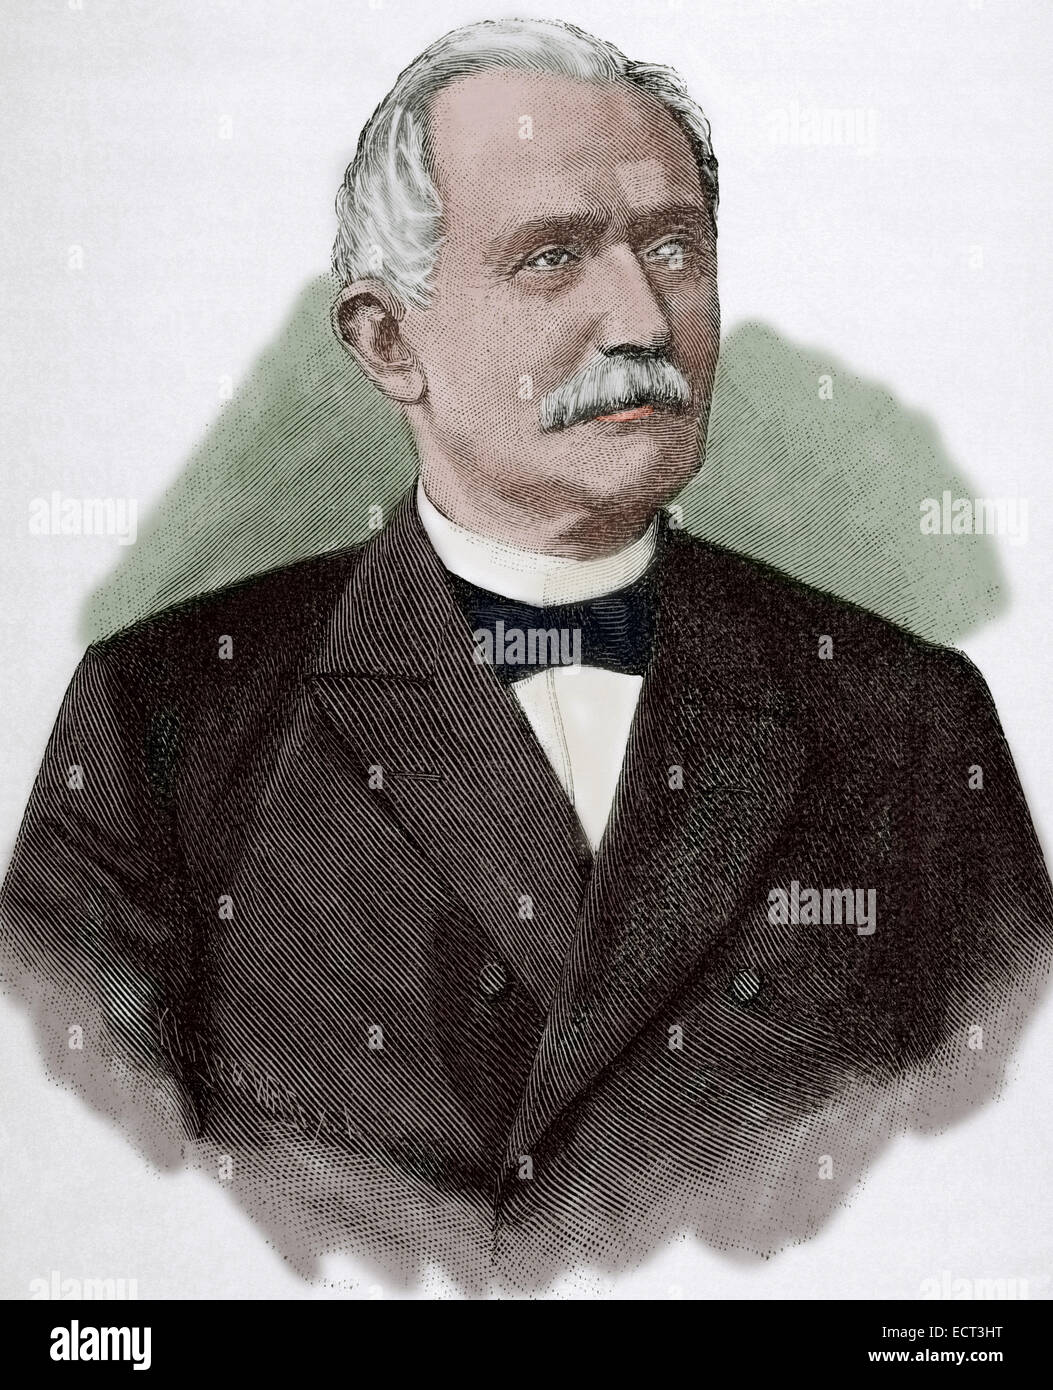 Arnold Heinrich Albert von Maybach (1822- 1904). German lawyer, politician and railway manager. Engraving. Historia - Stock Image